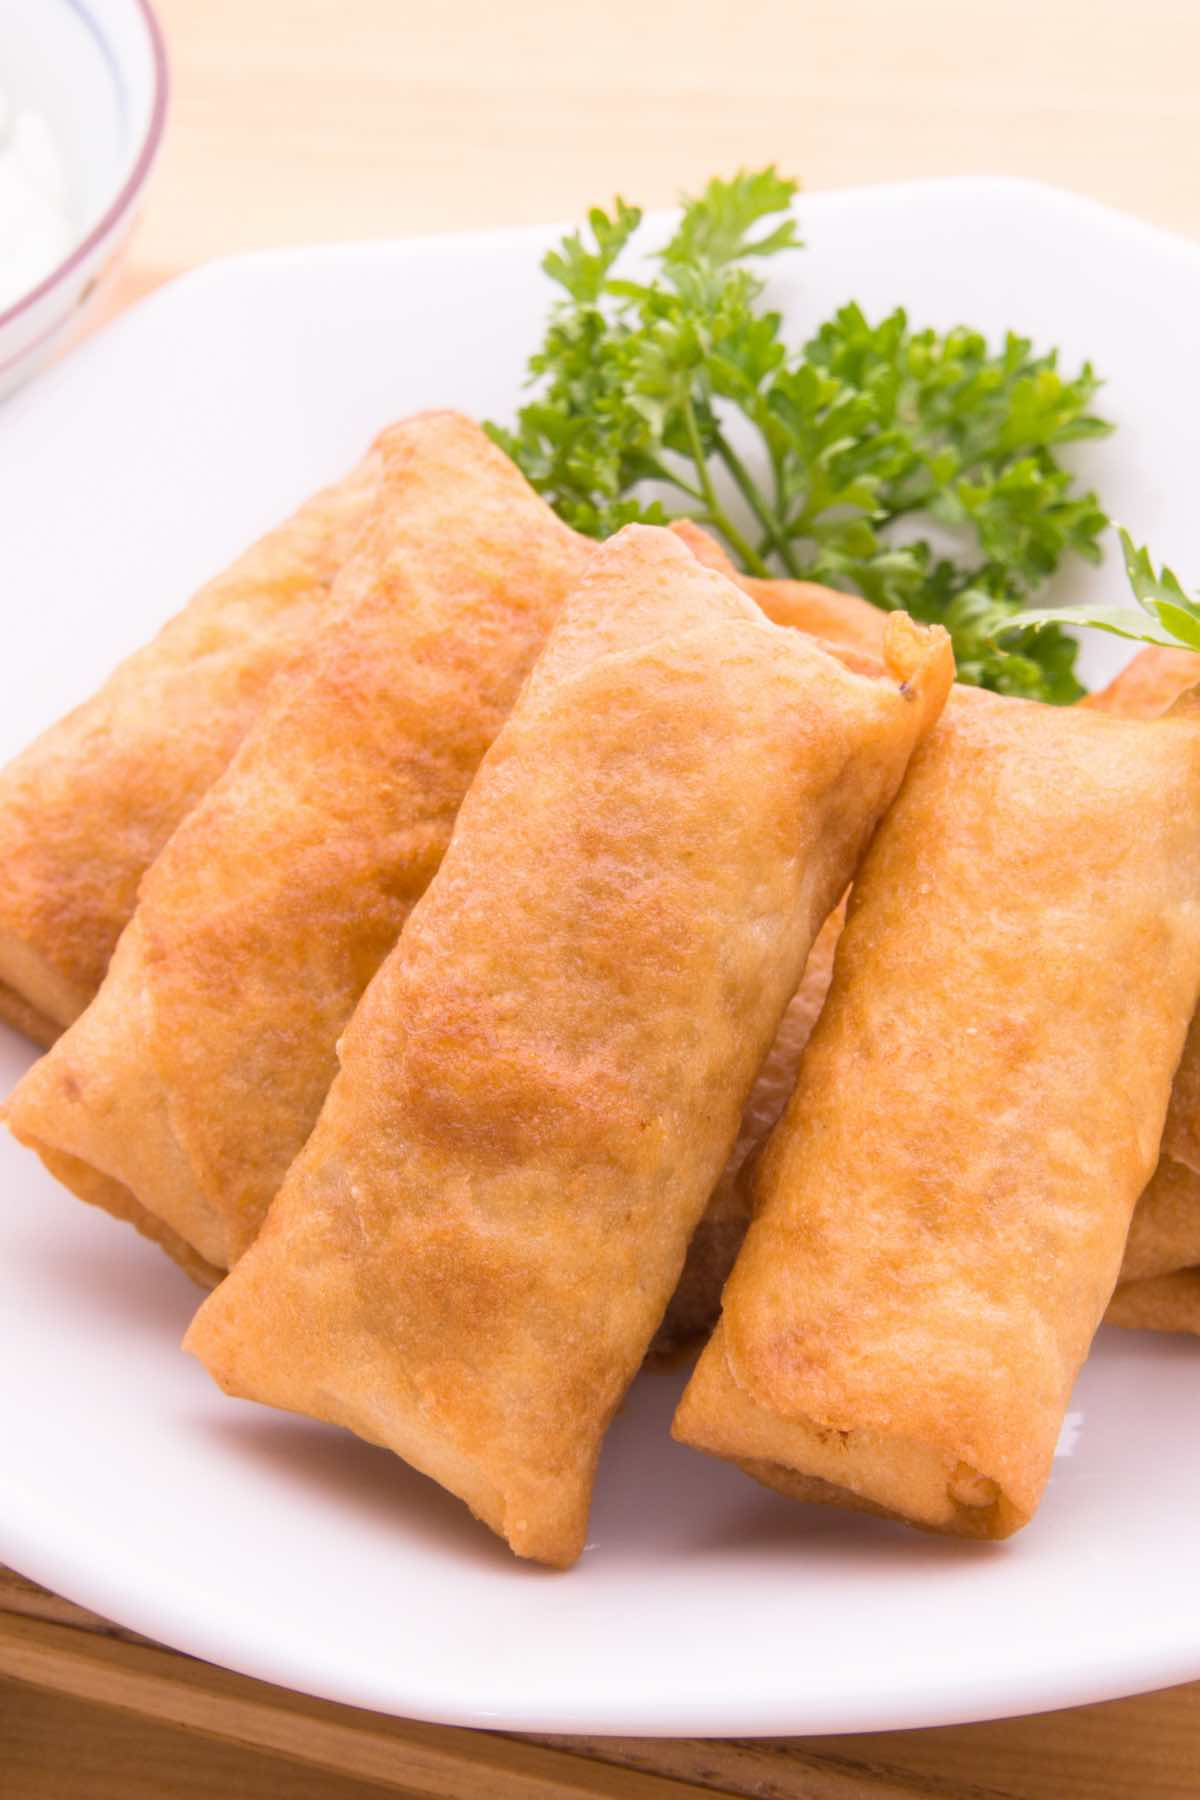 Harumaki is Japanese spring rolls that are crispy on the outside and soft, flavorful on the inside. You'll be surprised how easy it is to make these Japanese spring rolls. Fill the wrappers with your choice of vegetables, pork, chicken, or shrimp, and deep-fry until golden brown. I like to serve them with sweet and sour sauce for dipping, perfect for a light lunch, dinner, or appetizer!